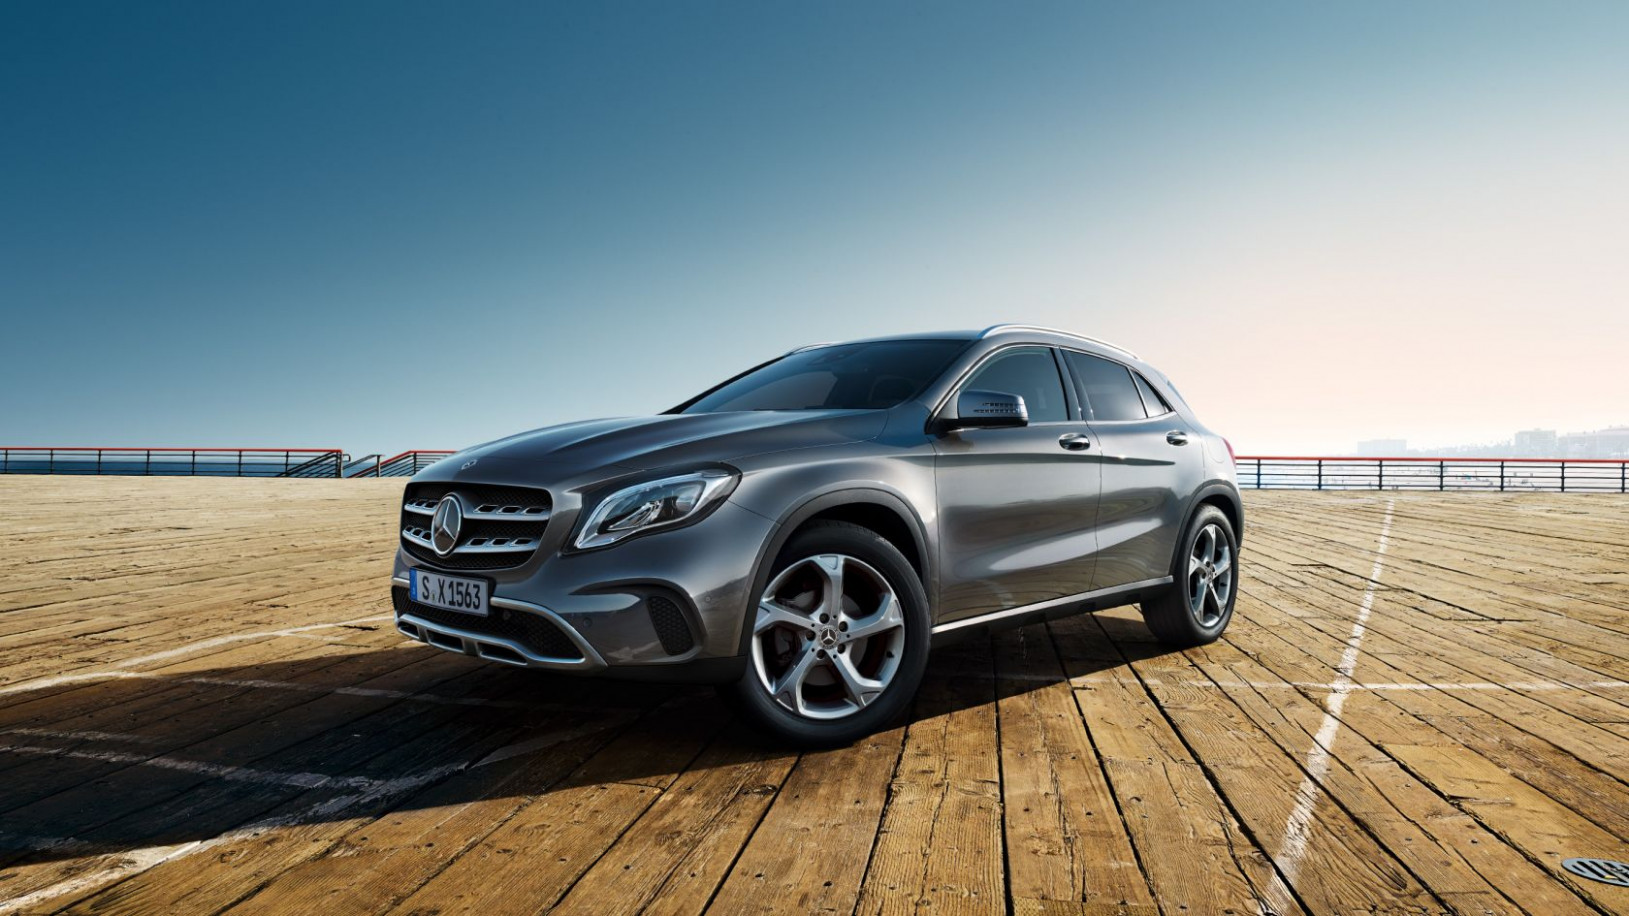 Mercedes-Benz GLA: Price List and offers